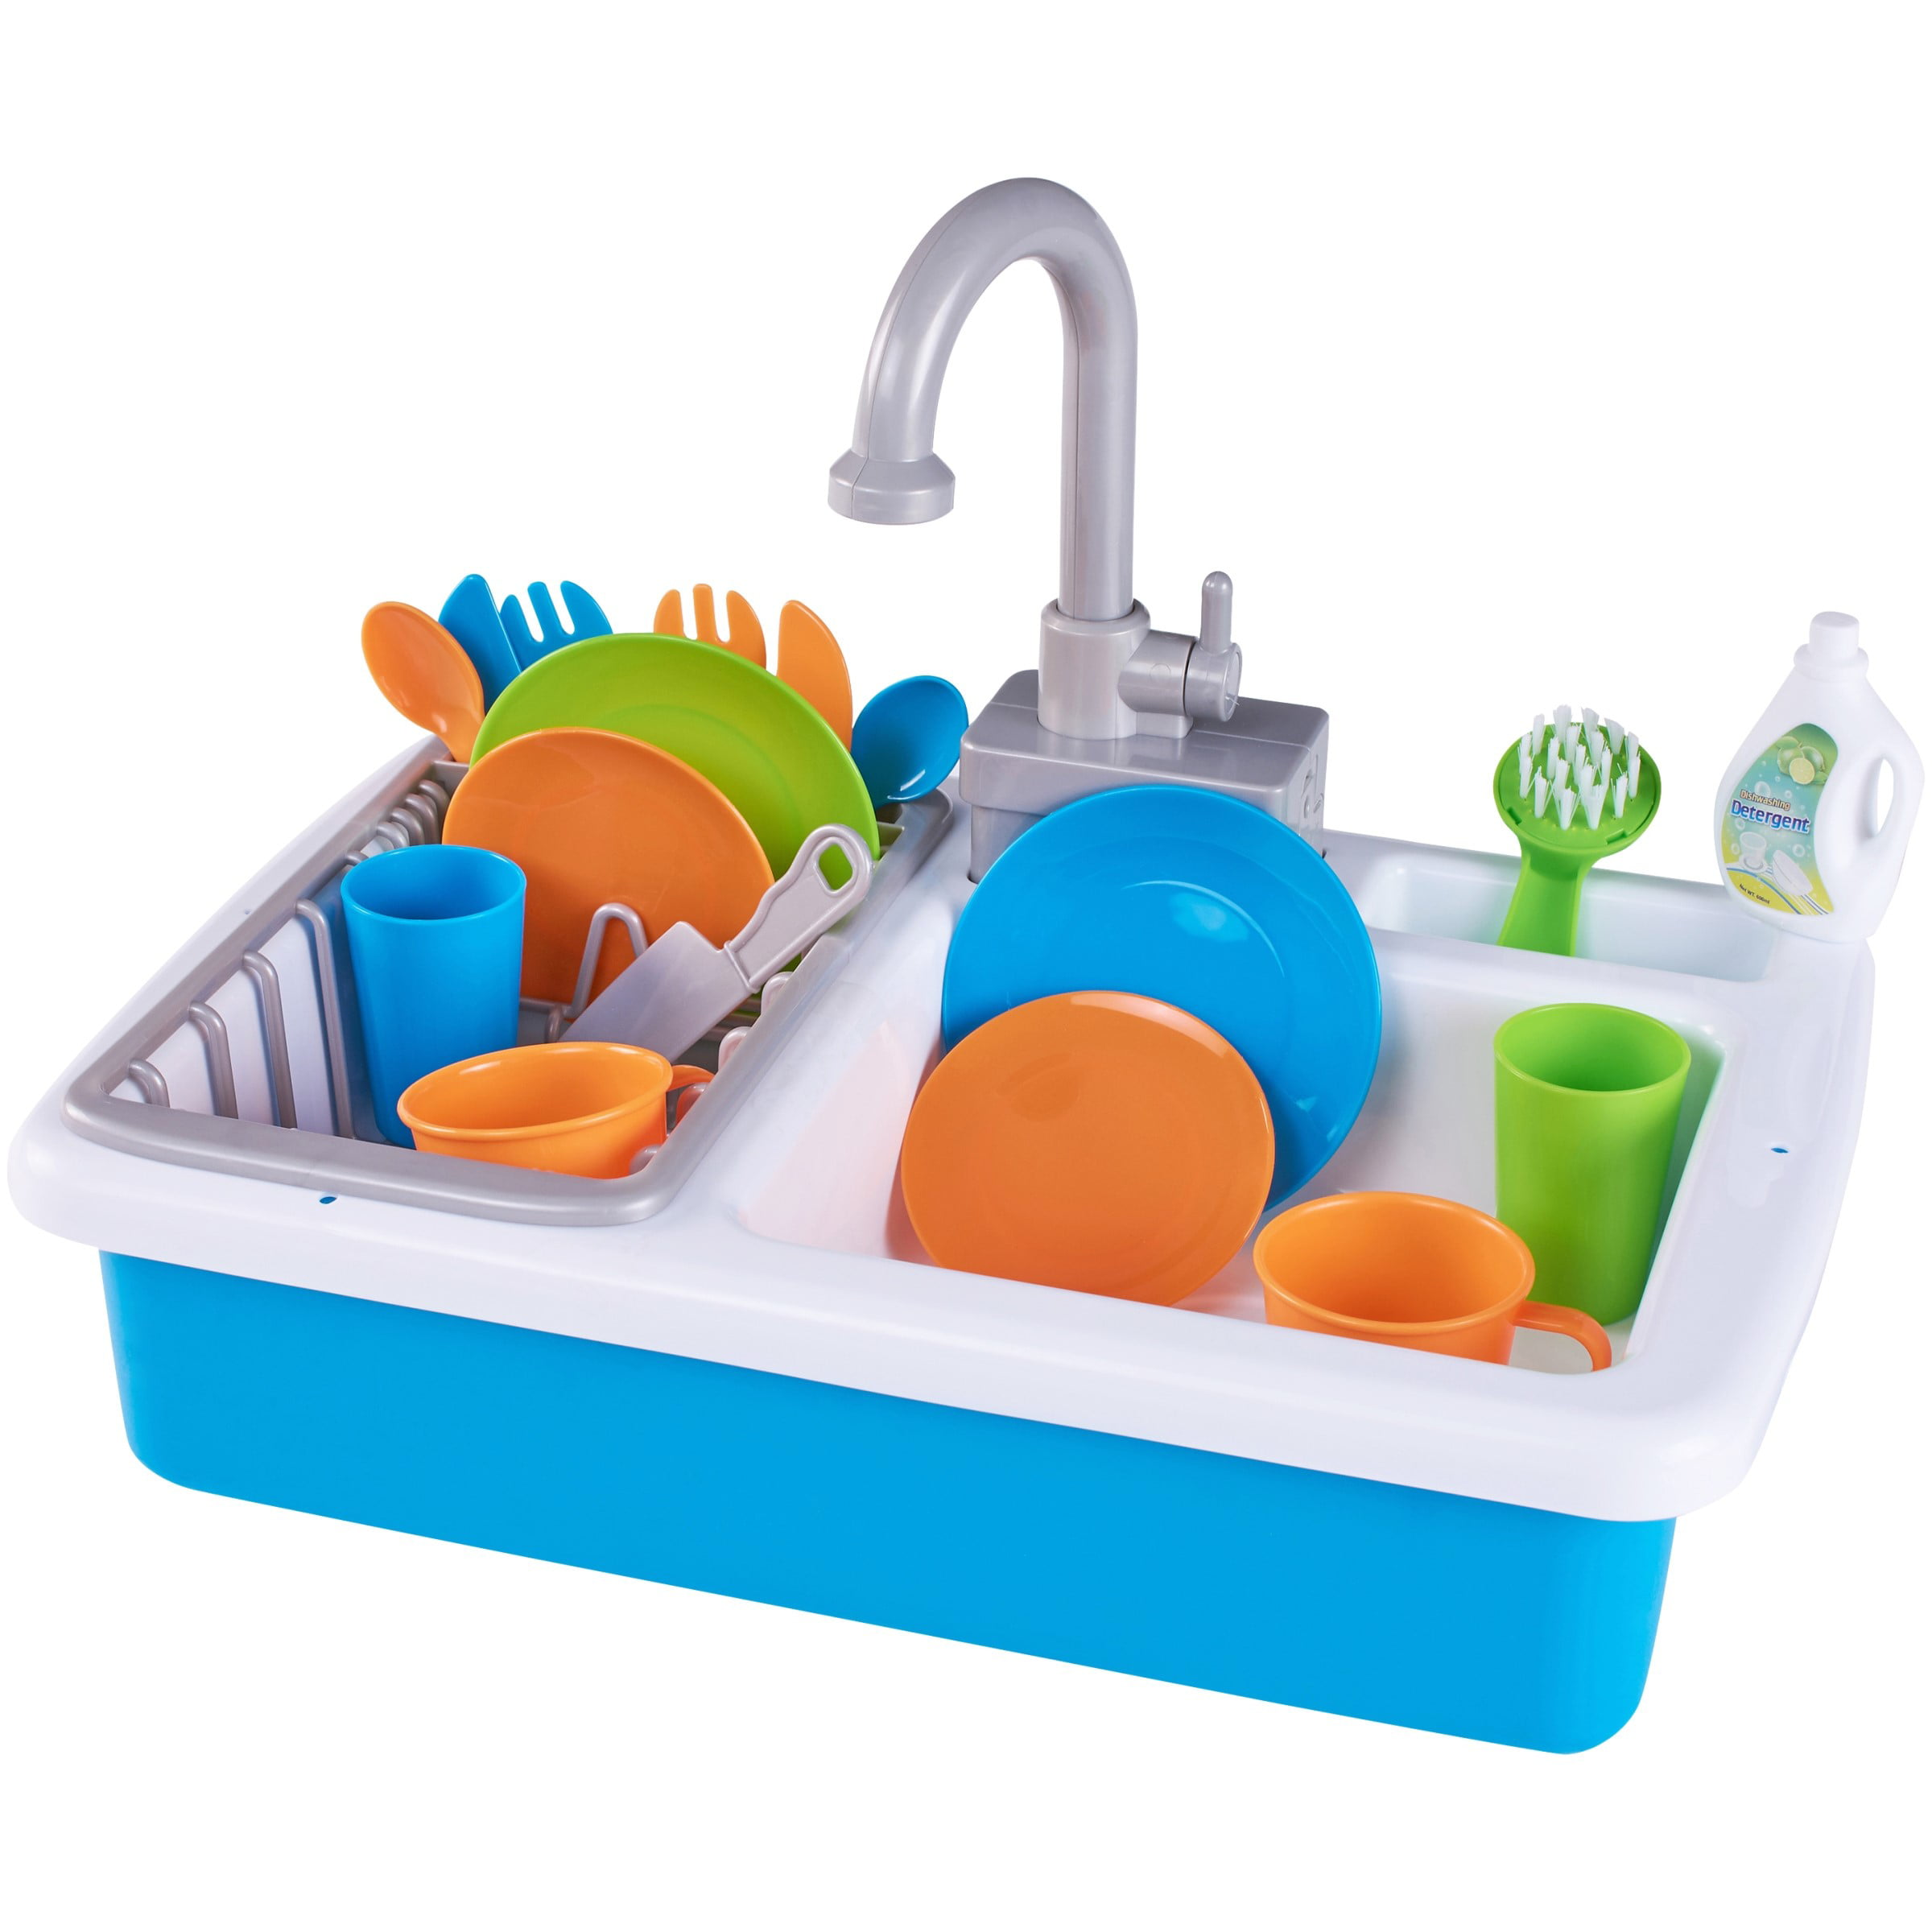 Spark. Create. Imagine. Kitchen Sink Play Set   Designed for Ages